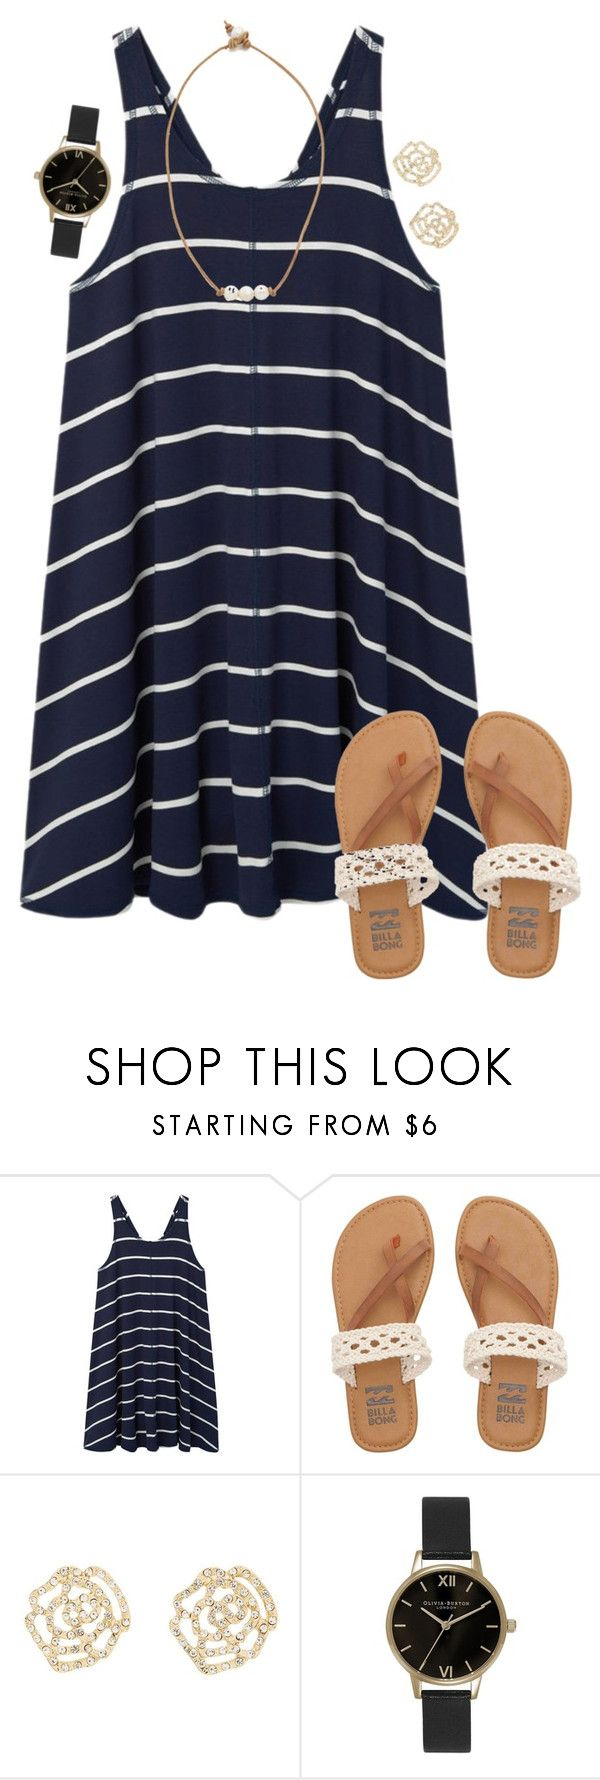 """""""don't tell me I don't know how you feel"""" by brinicholem ❤ liked on Polyvore featuring MANGO, Billabong, Charlotte Russe, Olivia Burton and Lead"""